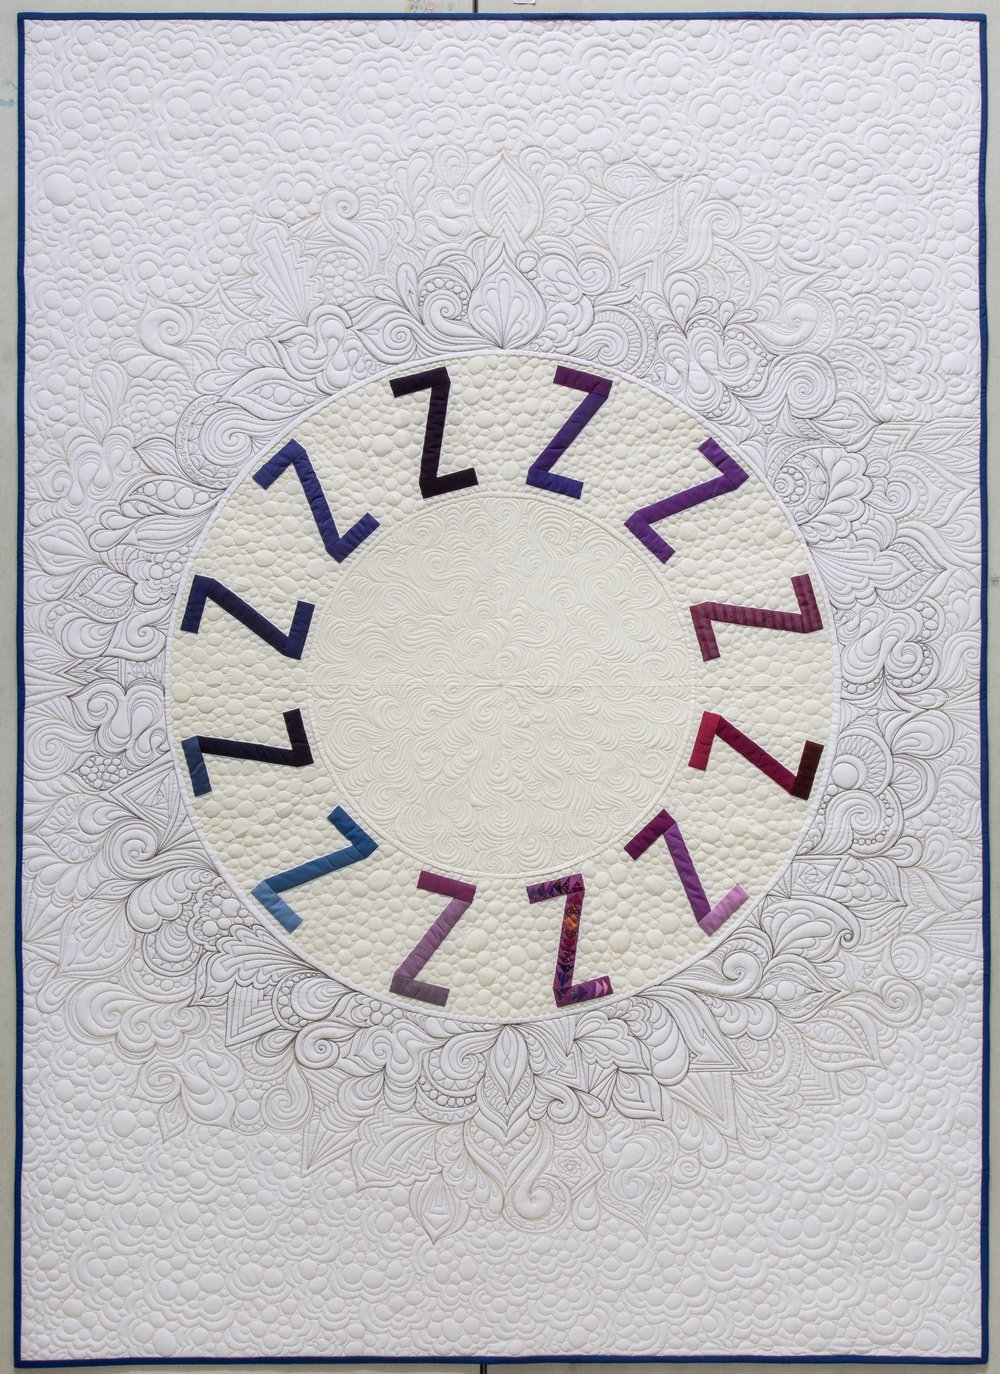 Snooze quilt by Sarah Sharp, quilting by Karlee Porter